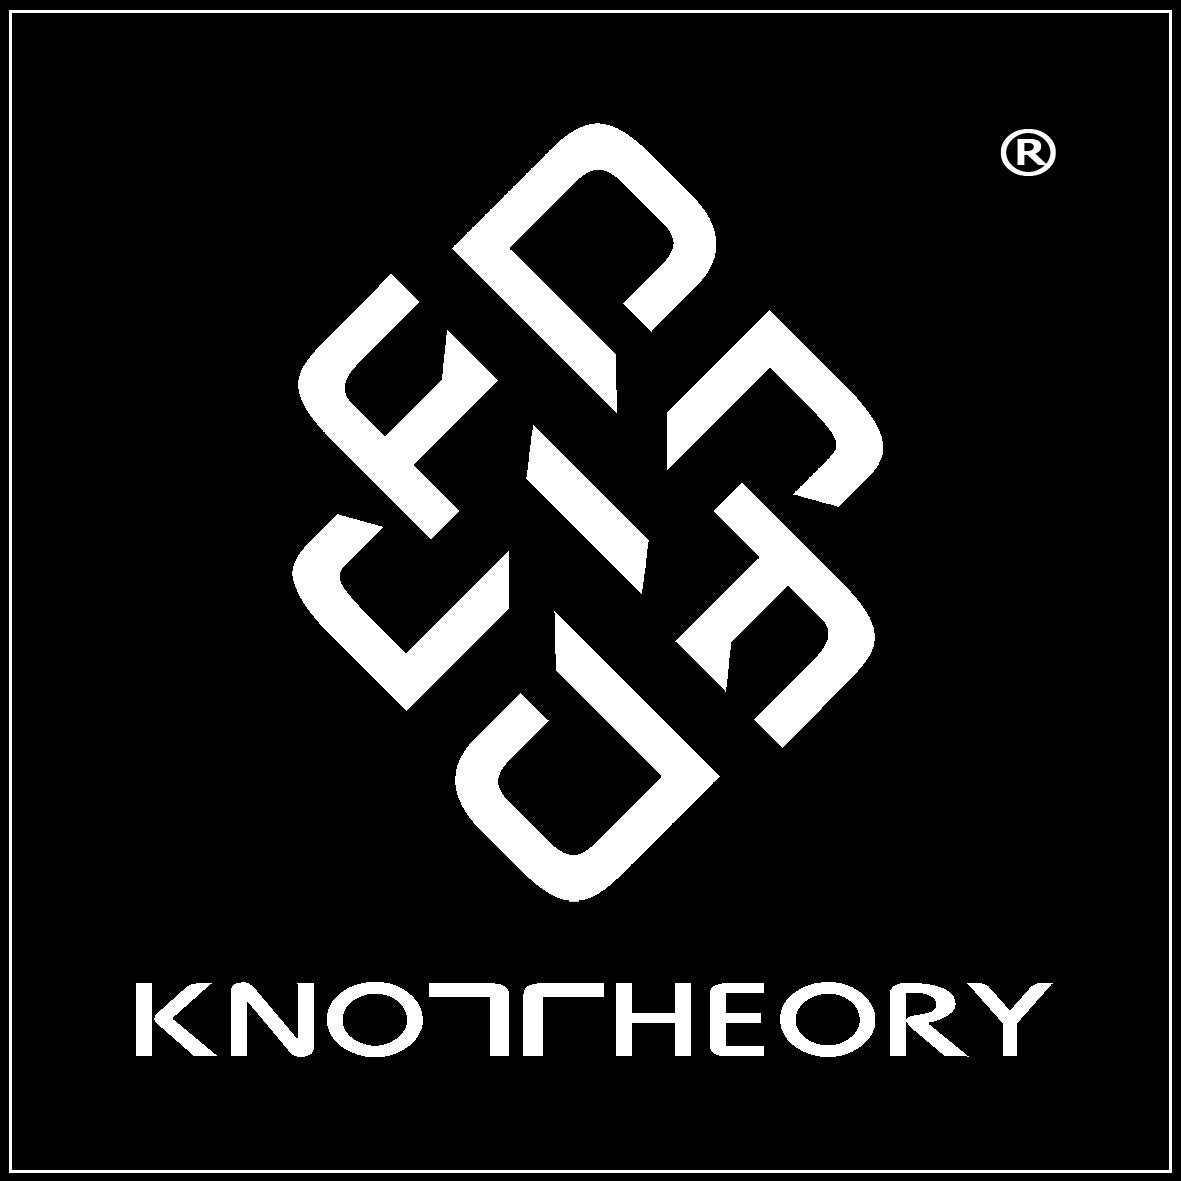 Knot Theory Bague en silicone avec bords arrondis 8 mm Taille 9